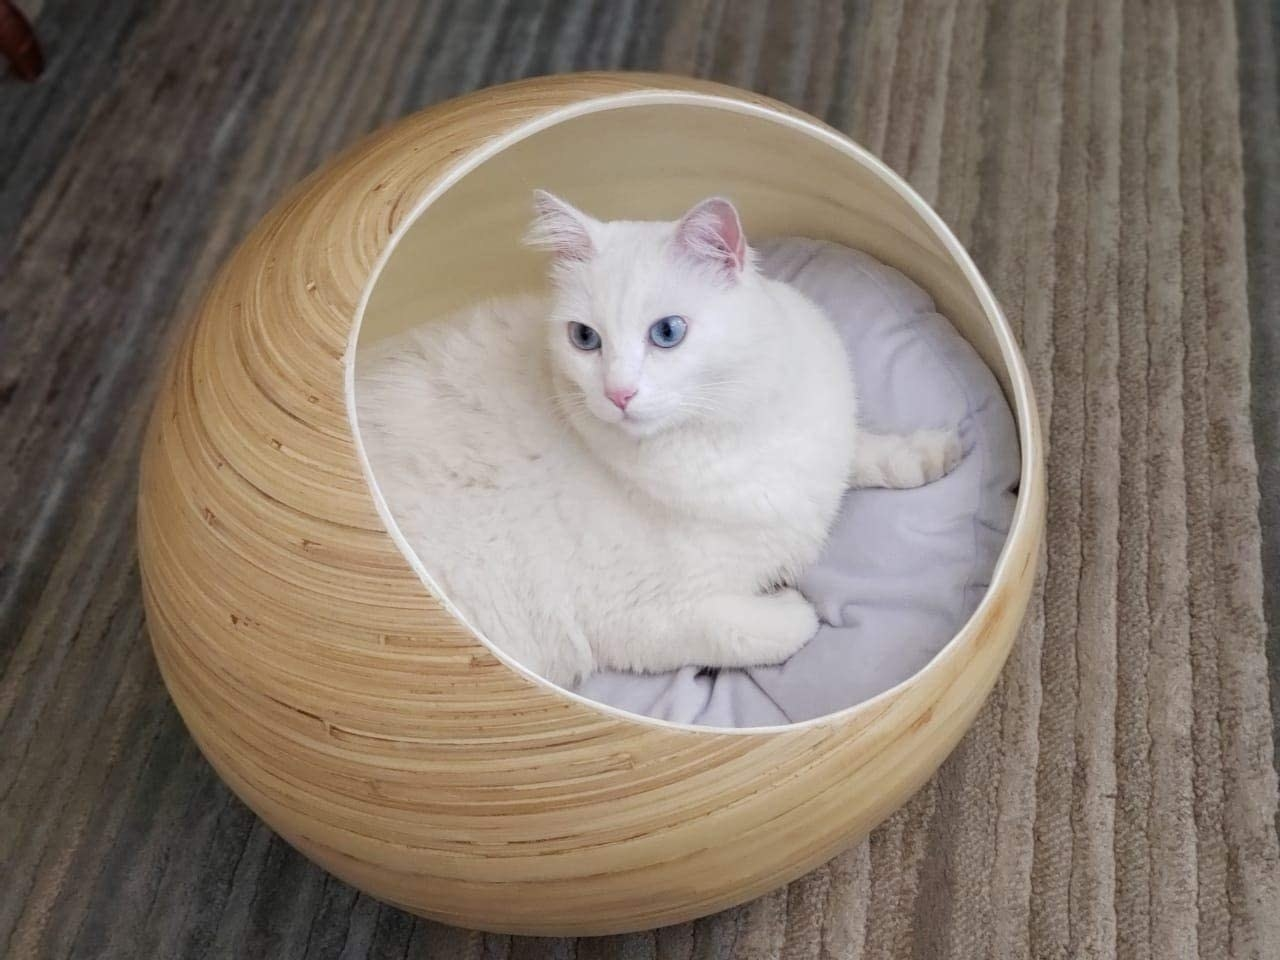 Cat inside ball-shaped bamboo bed with cushion